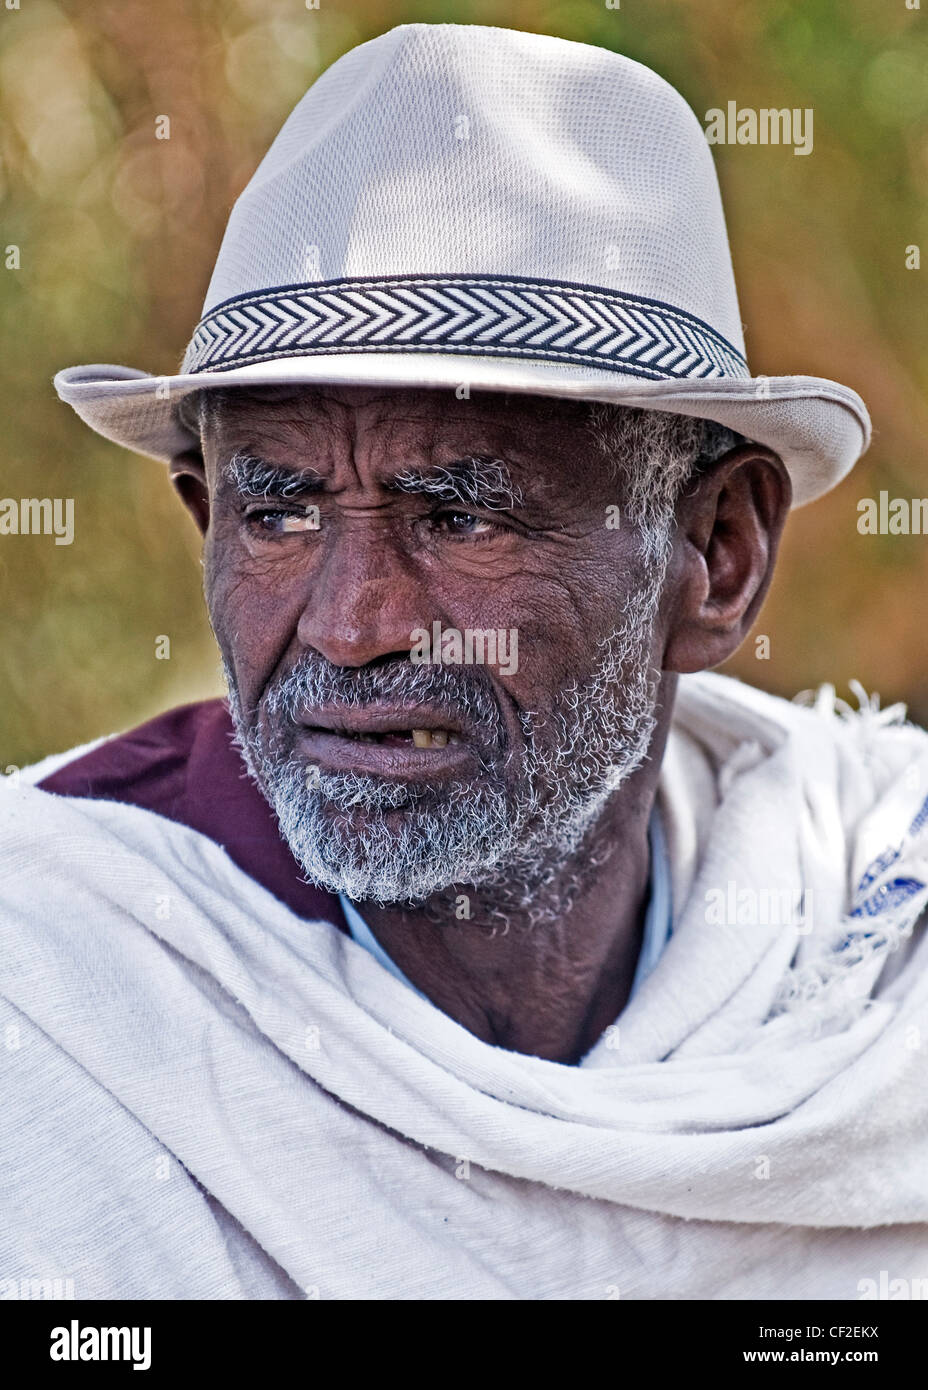 Portrait of Ethiopian Jew man during the 'Sigd' holiday in Jerusalem - Stock Image